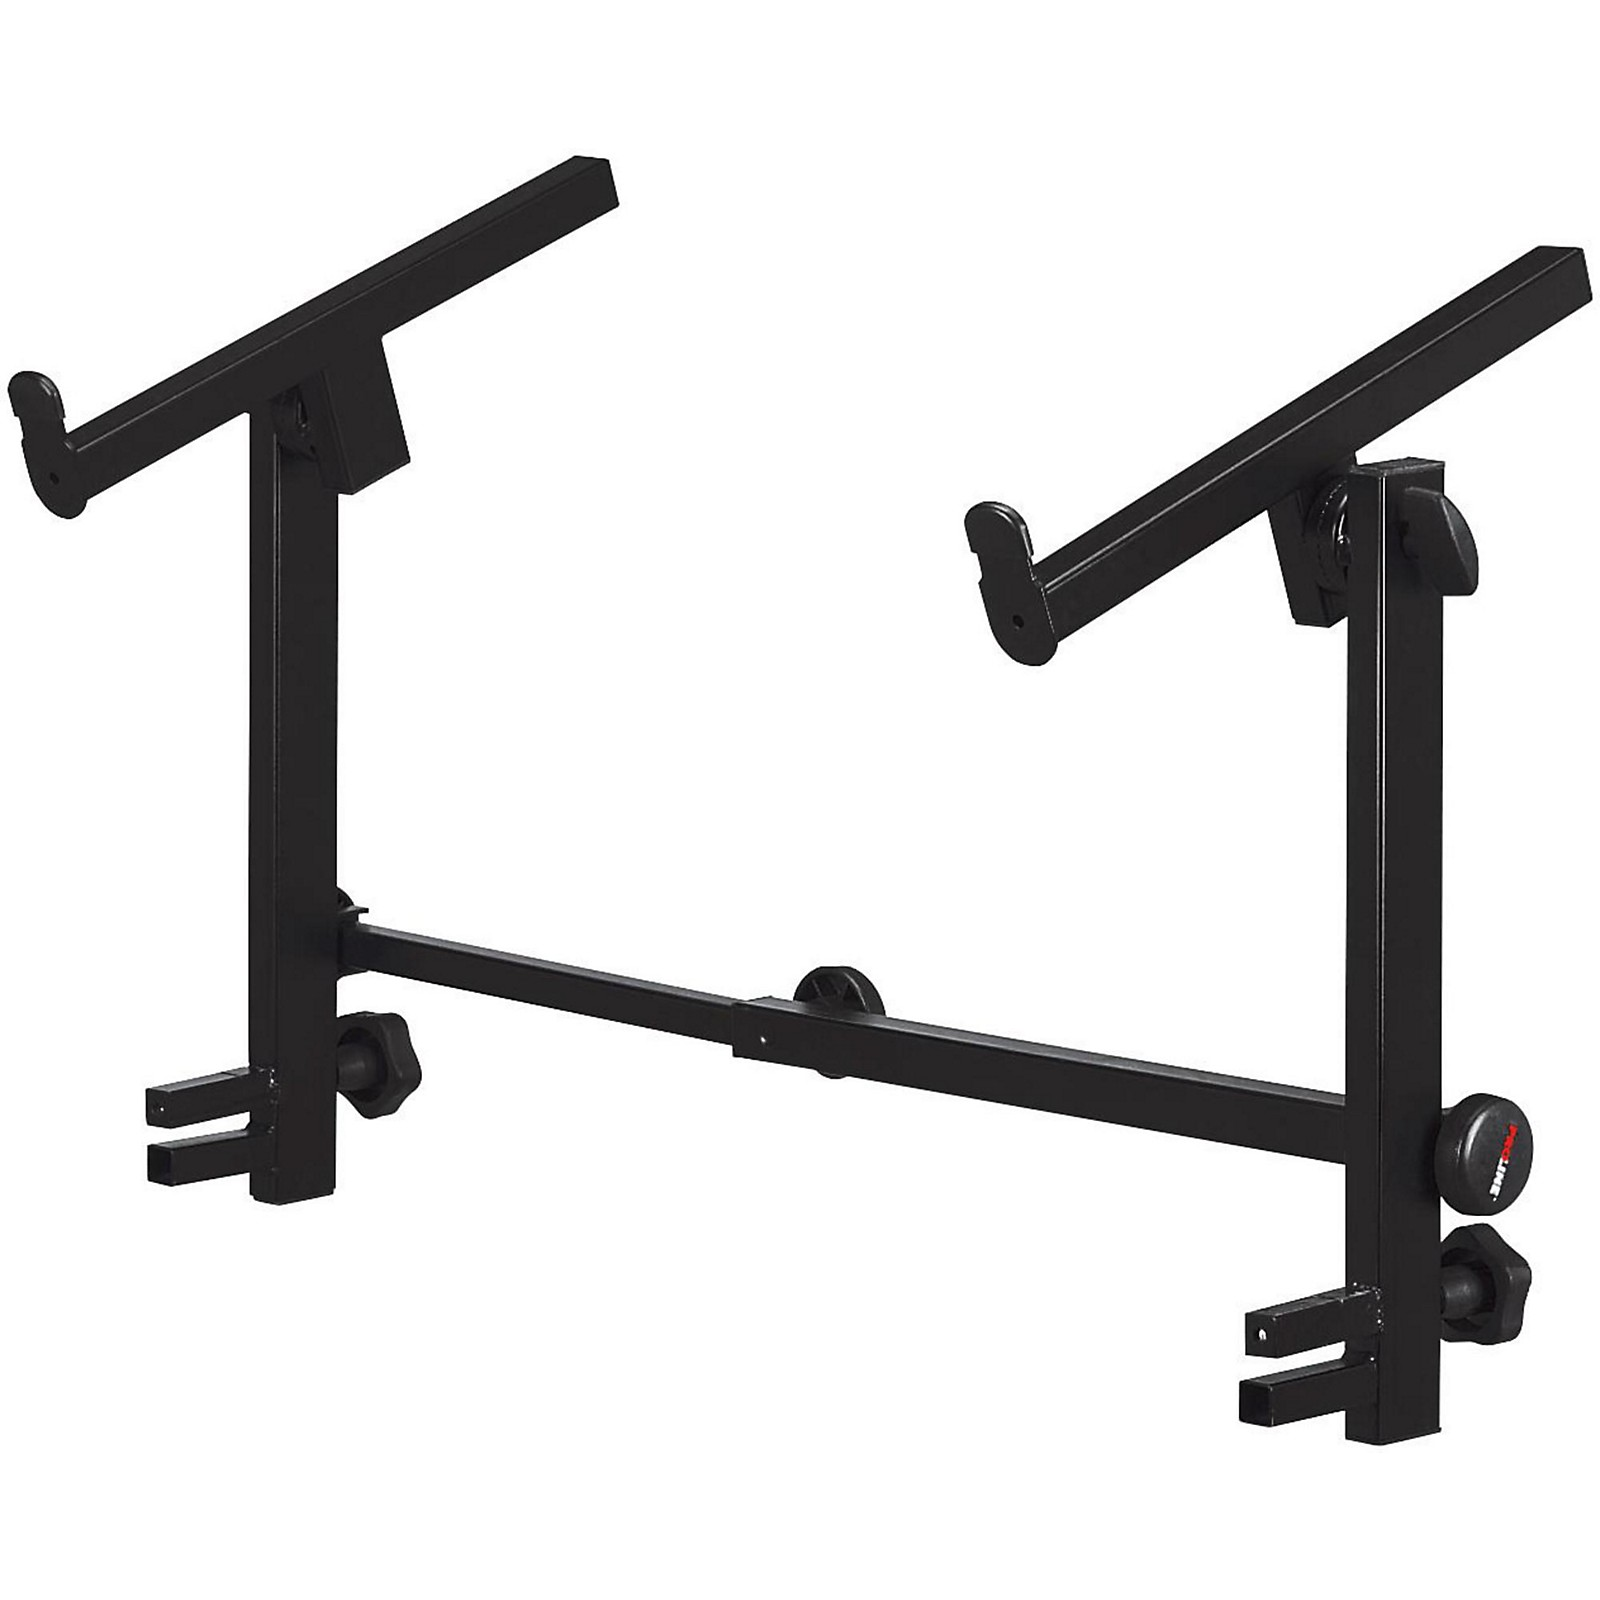 Proline PL700T Add-on 2nd Tier for Keyboard Z Stand